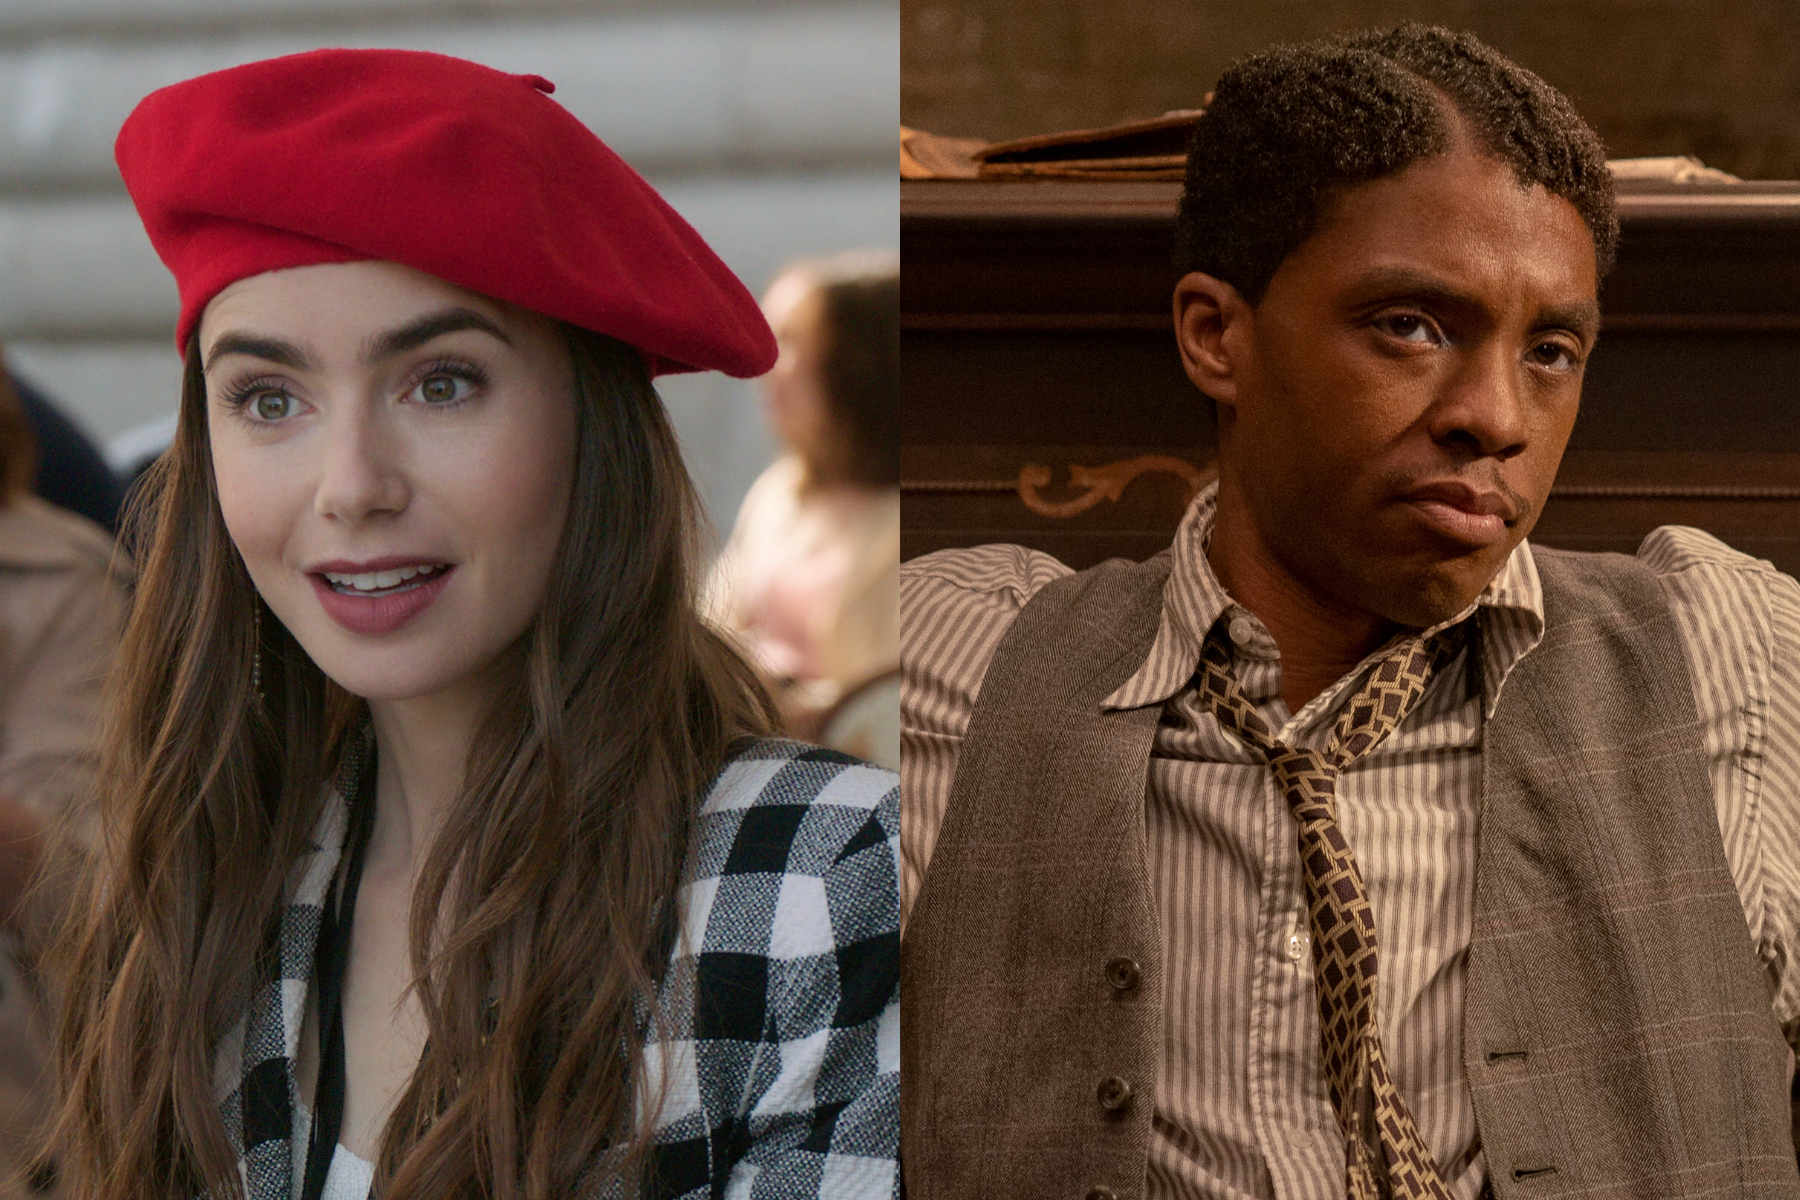 A split screen with Lily Collins in a beret and Chadwick Boseman in a vest, leaning and looking quizzical.